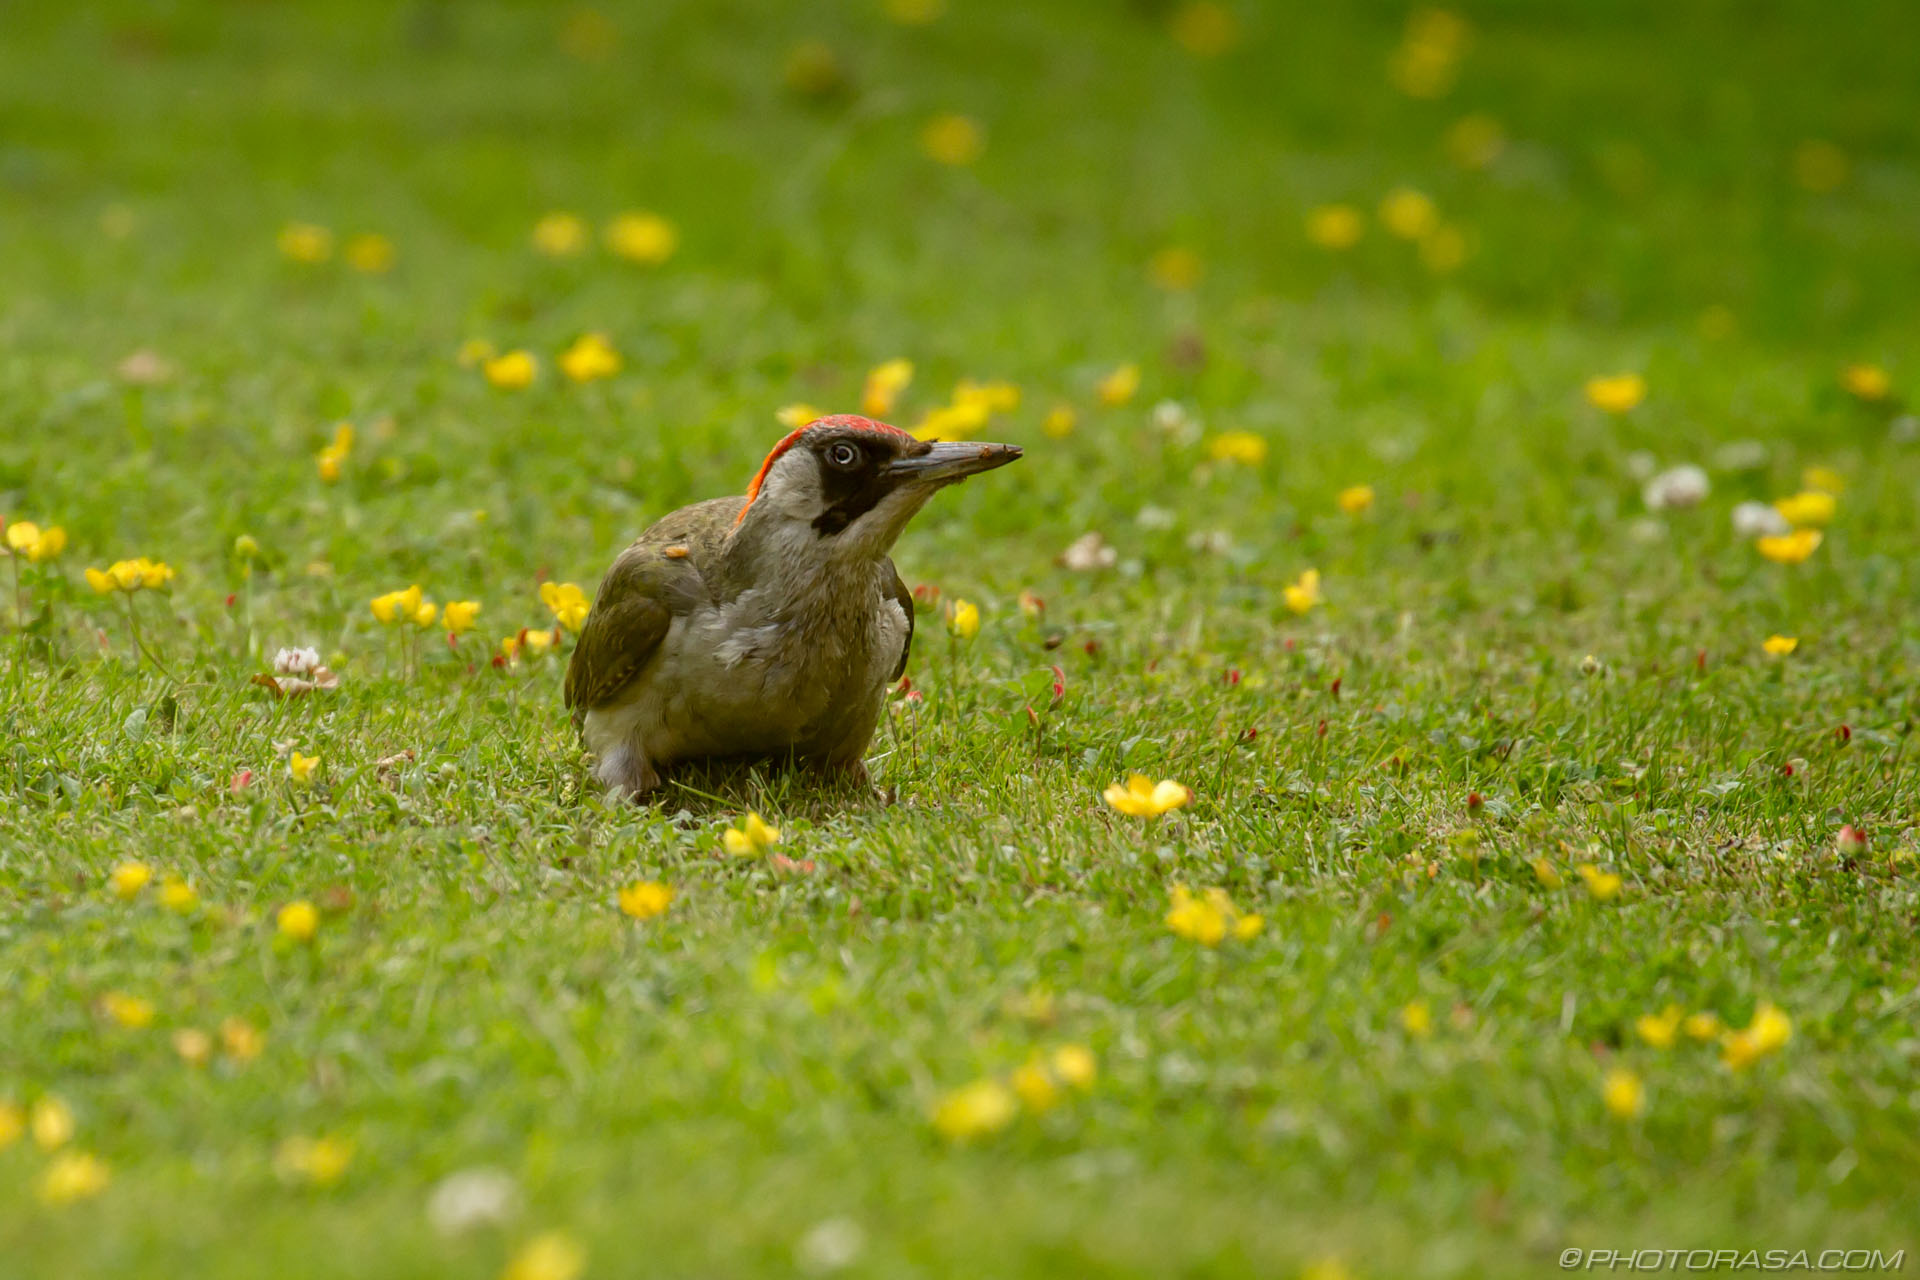 http://photorasa.com/green-woodpecker/female-green-woodpecker-sitting-and-waiting/